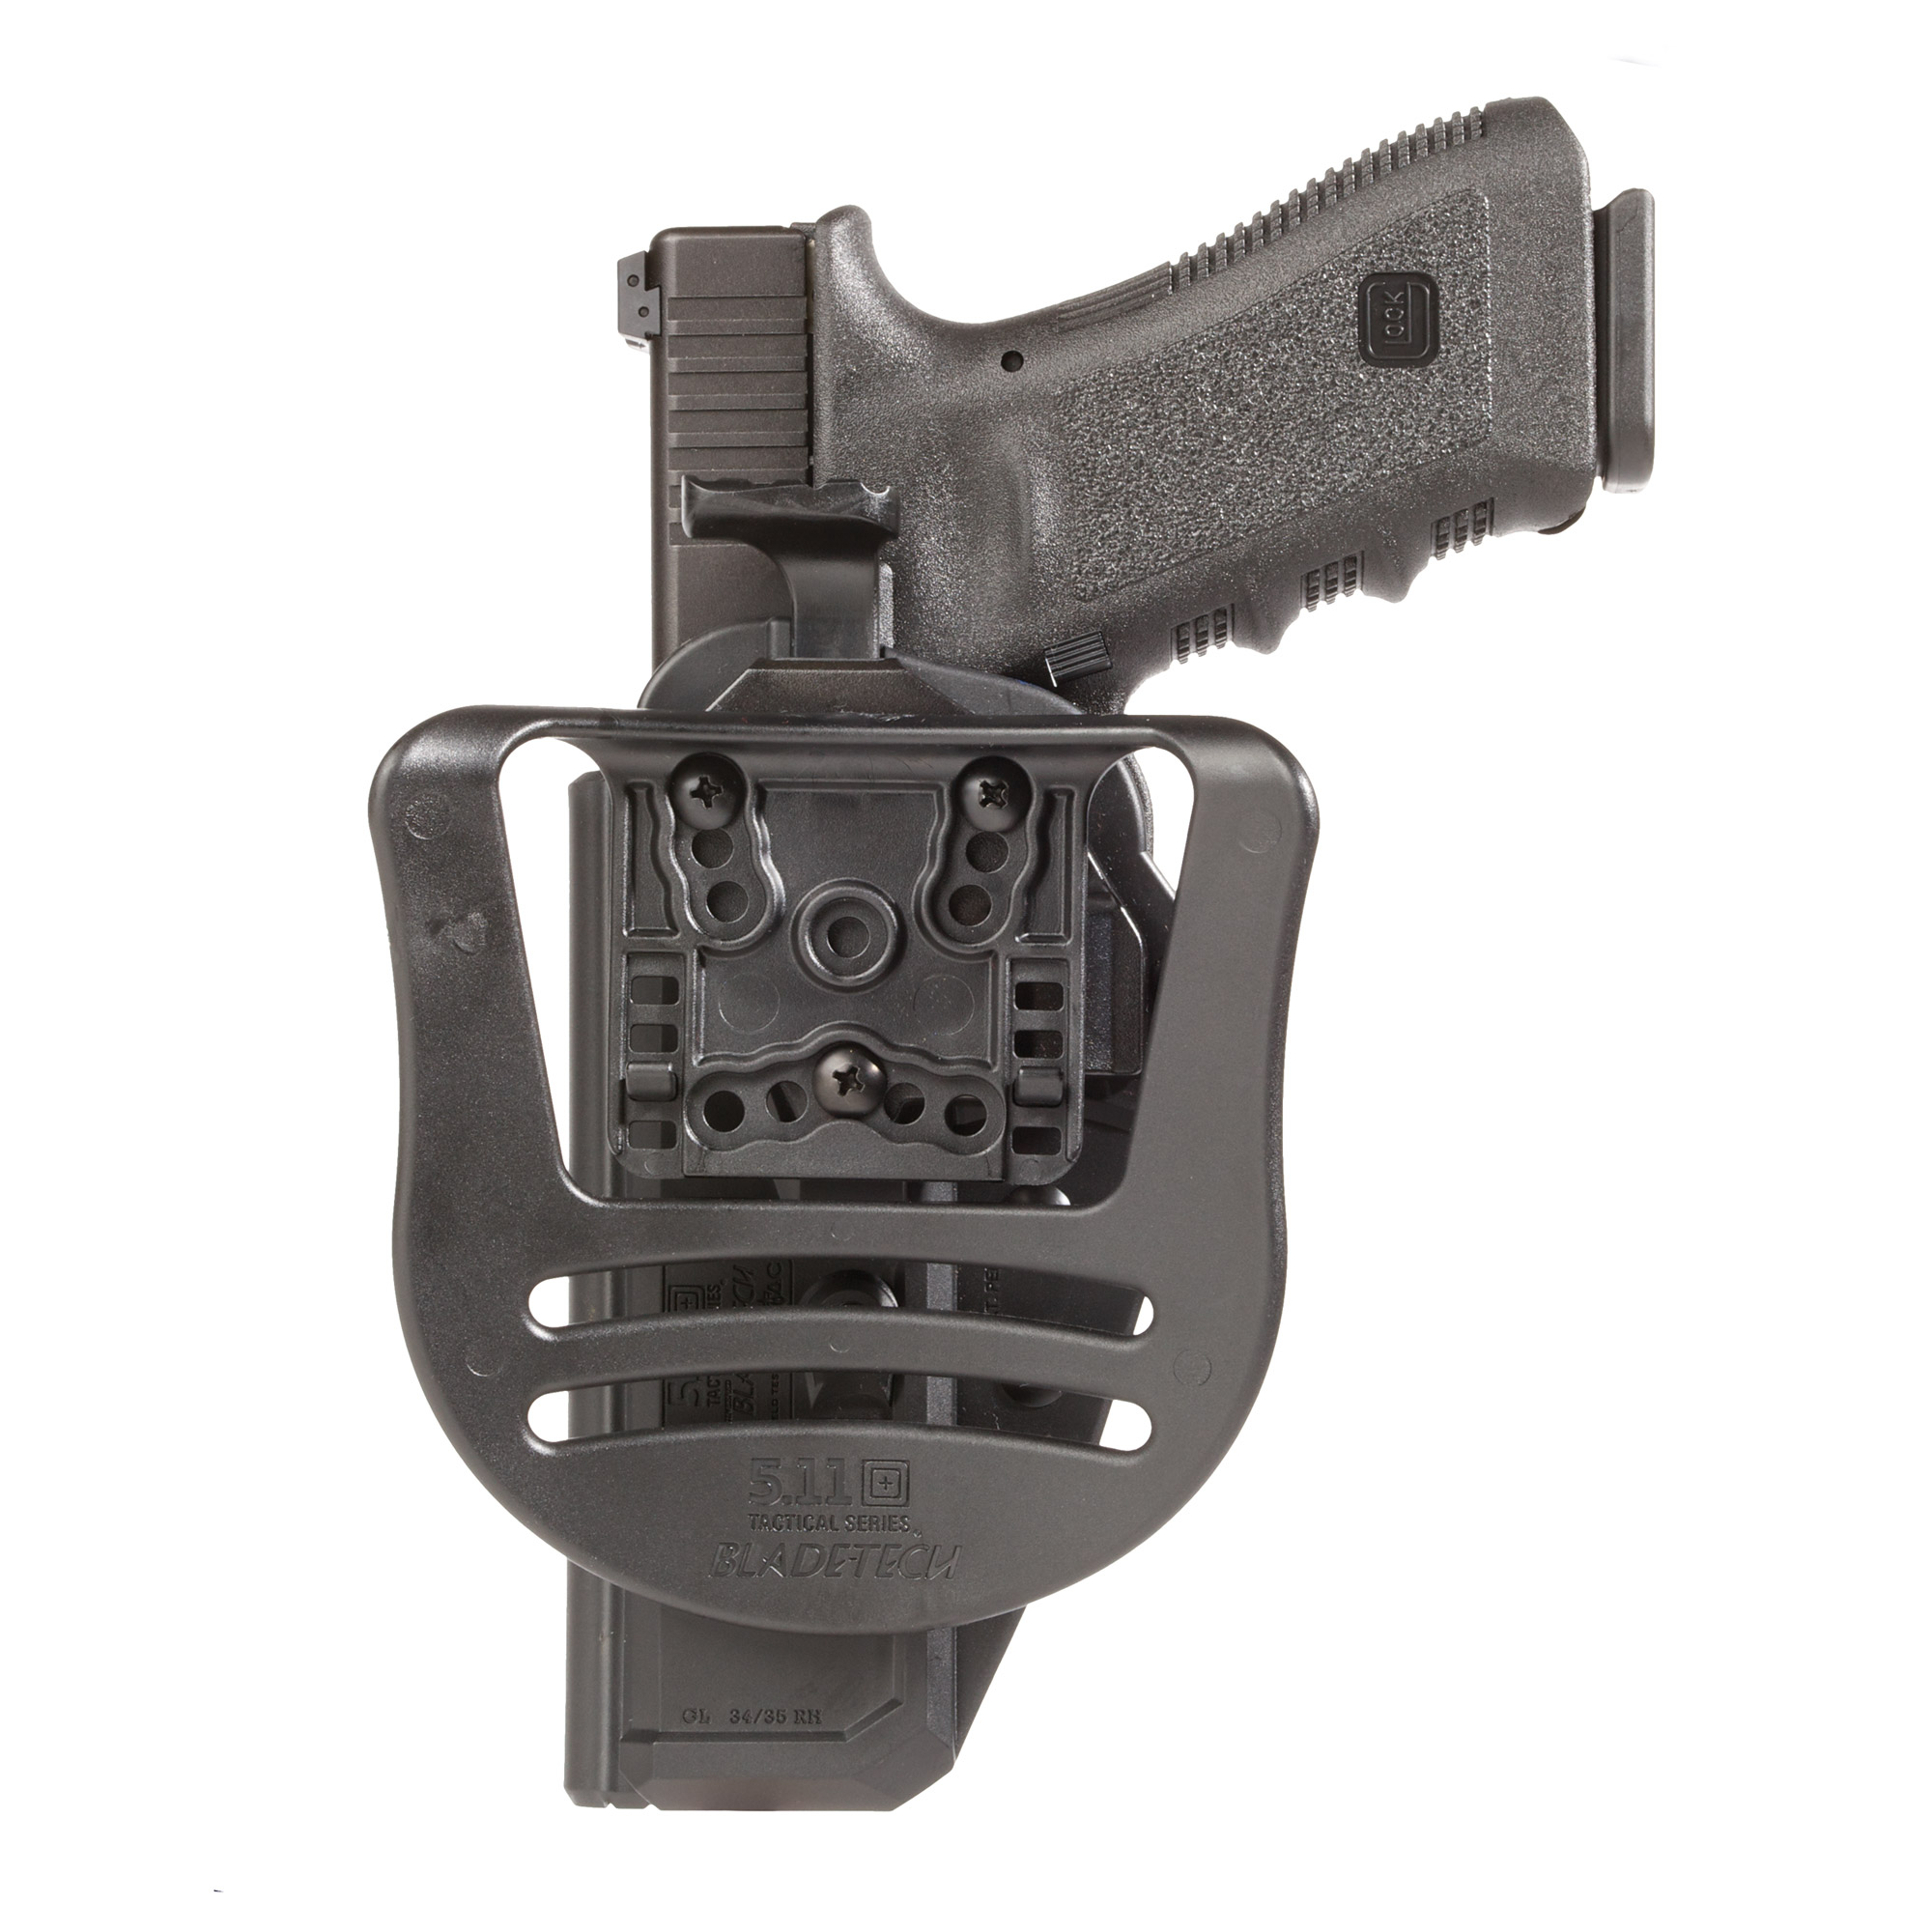 5.11 Thumbdrive Holster - Glock19/23 Left Hand [Clearance]